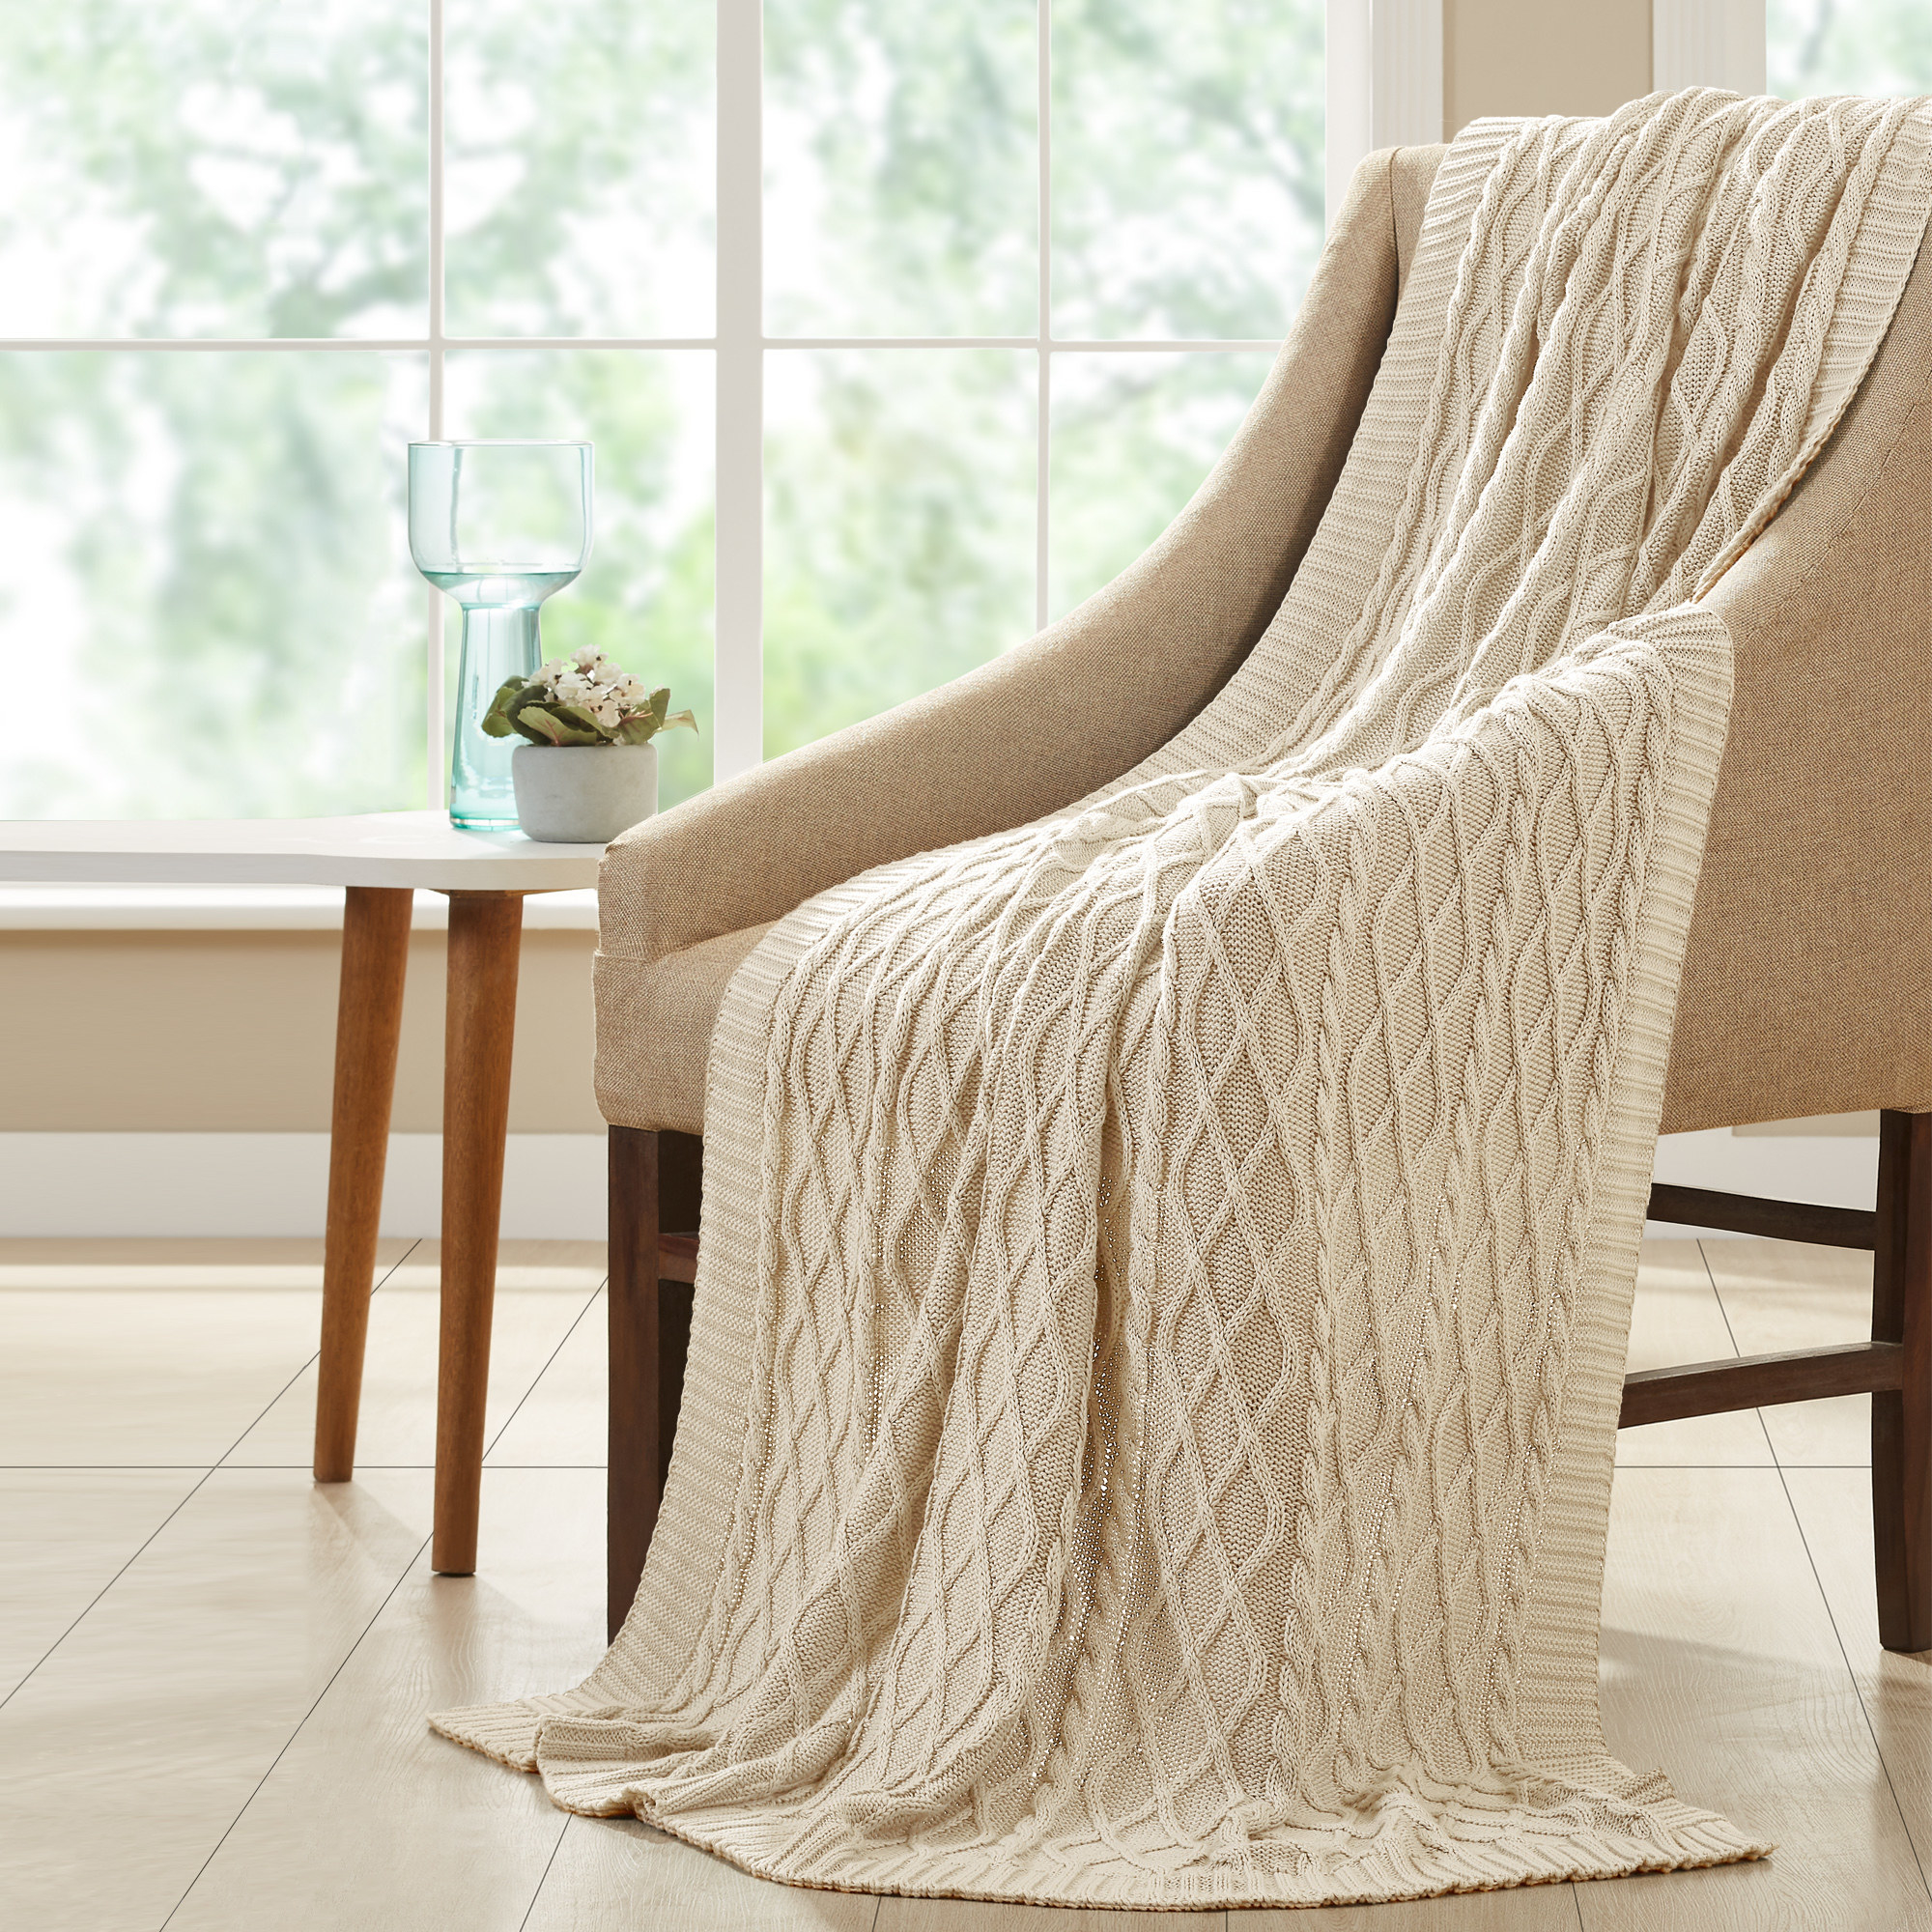 Cable knit throw blanket in sand